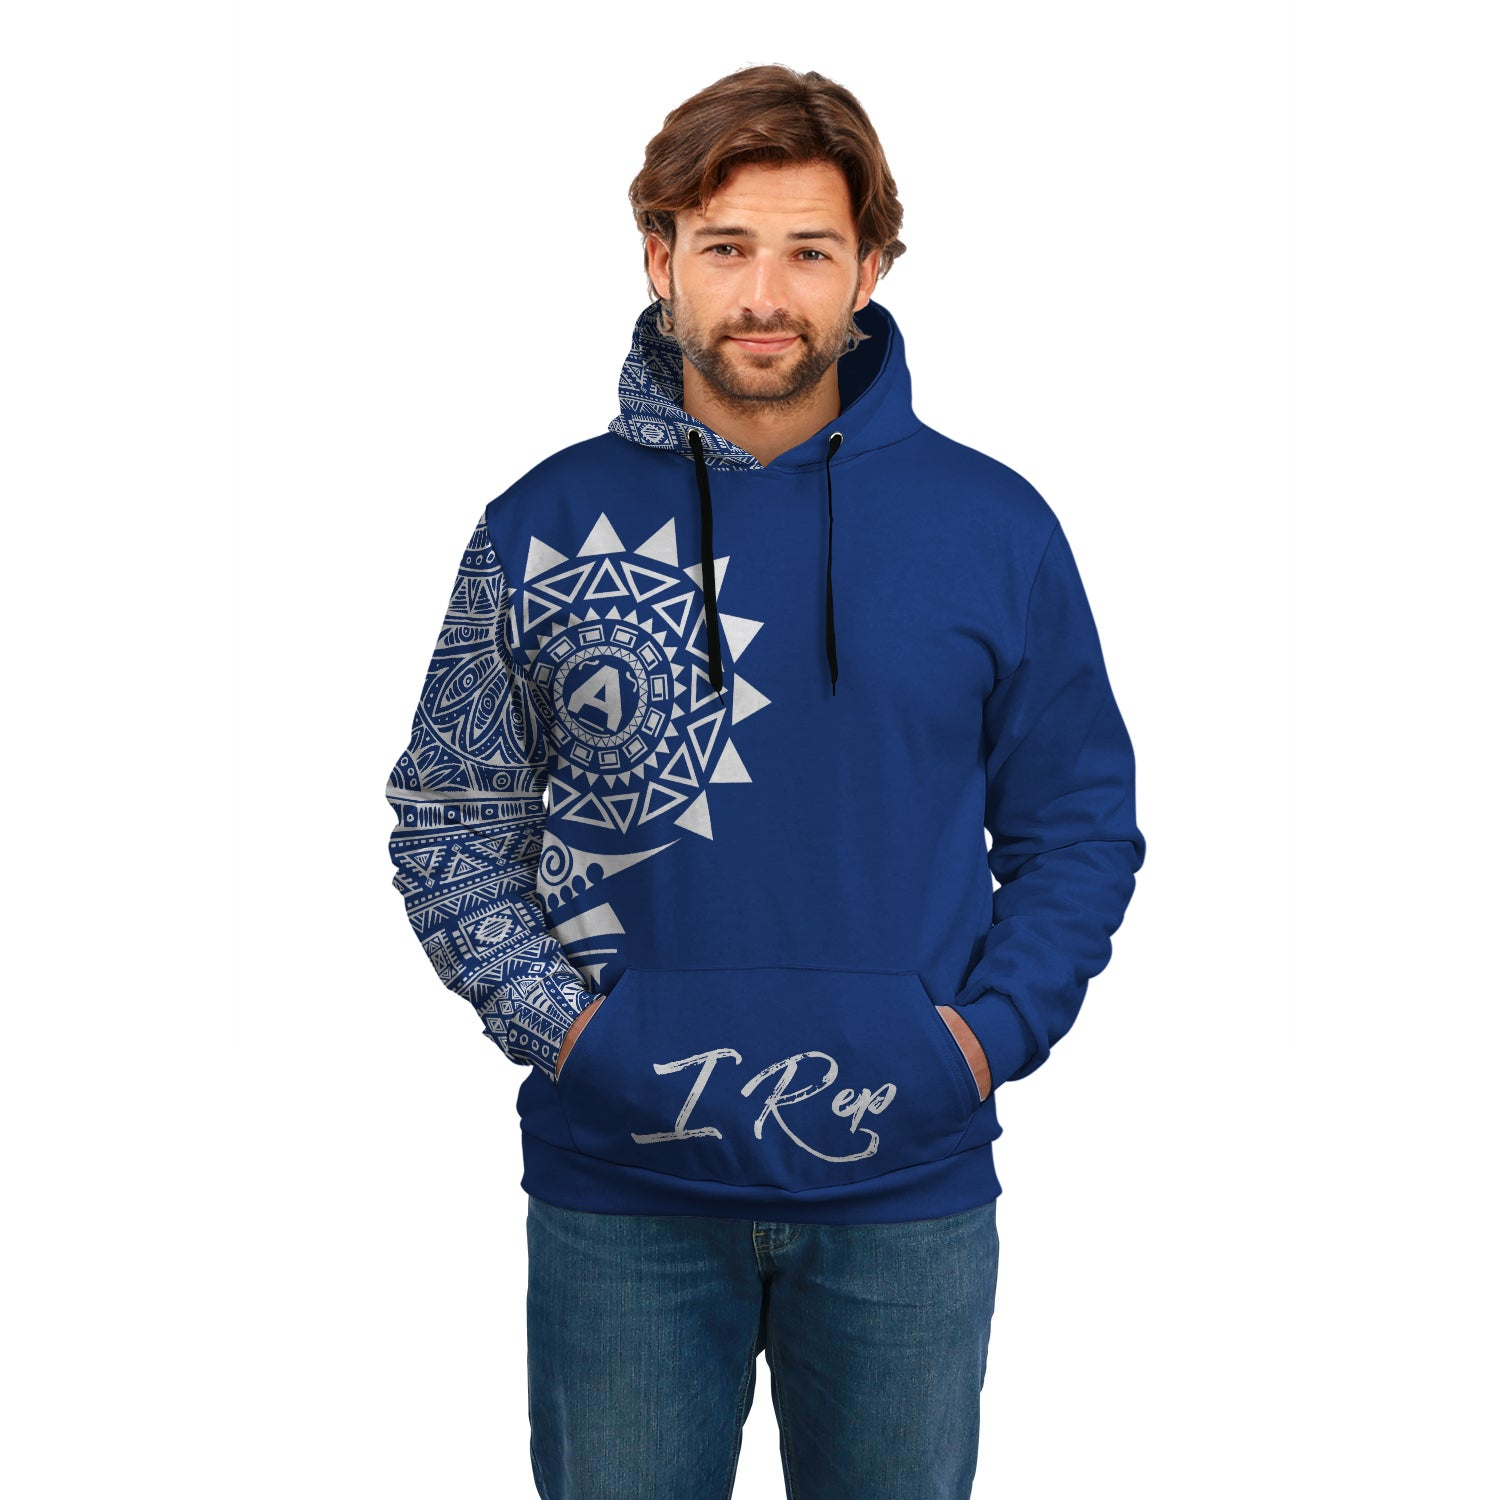 I REP FRONT POCKET HOODIE - Blue & White